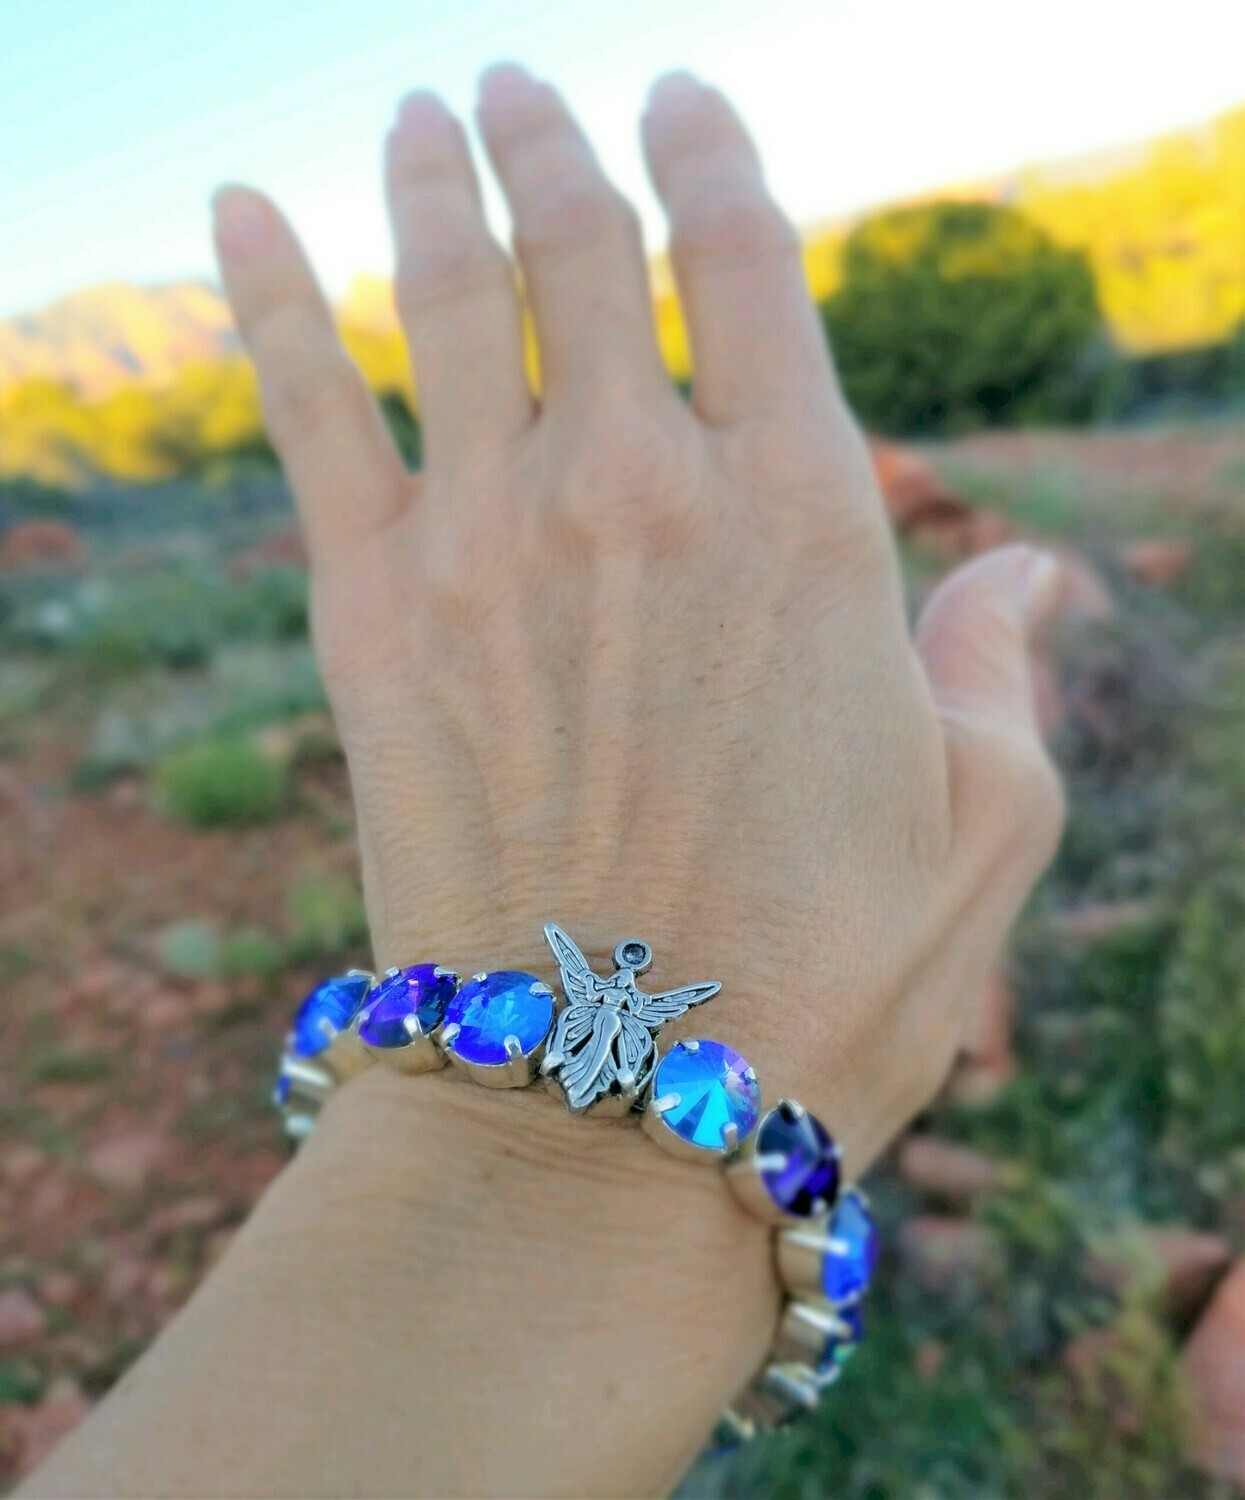 Devic Crystal LOVE Technology Bracelet/ Blue Ray Lemurian Fairy Language of light $99.00/$133.00 Fairy Retreat Sale